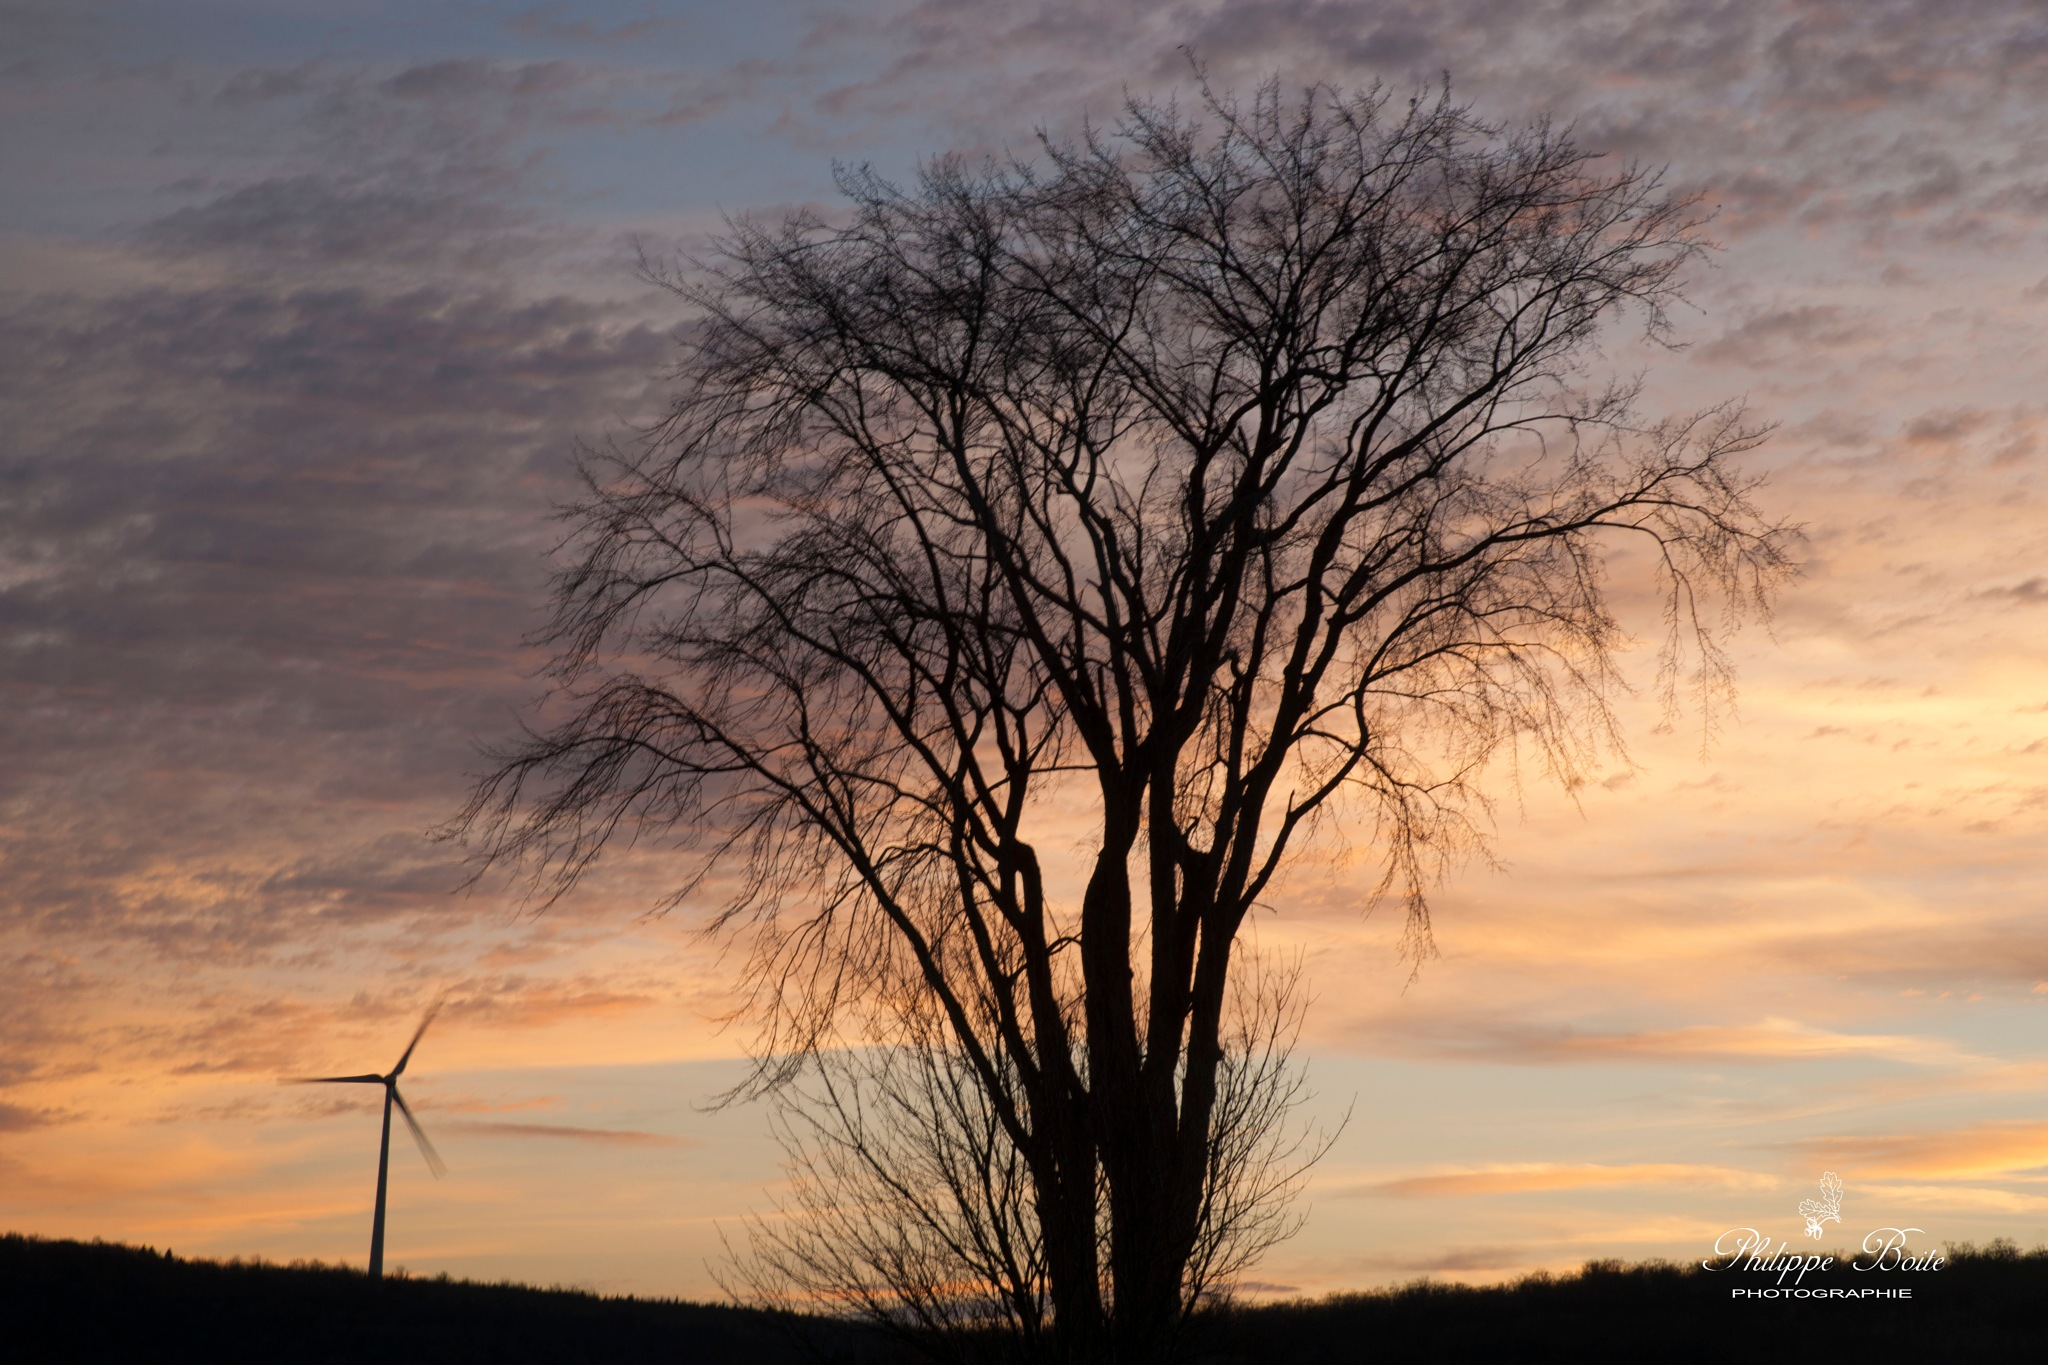 Sunset behind a tree by Philippe Boite